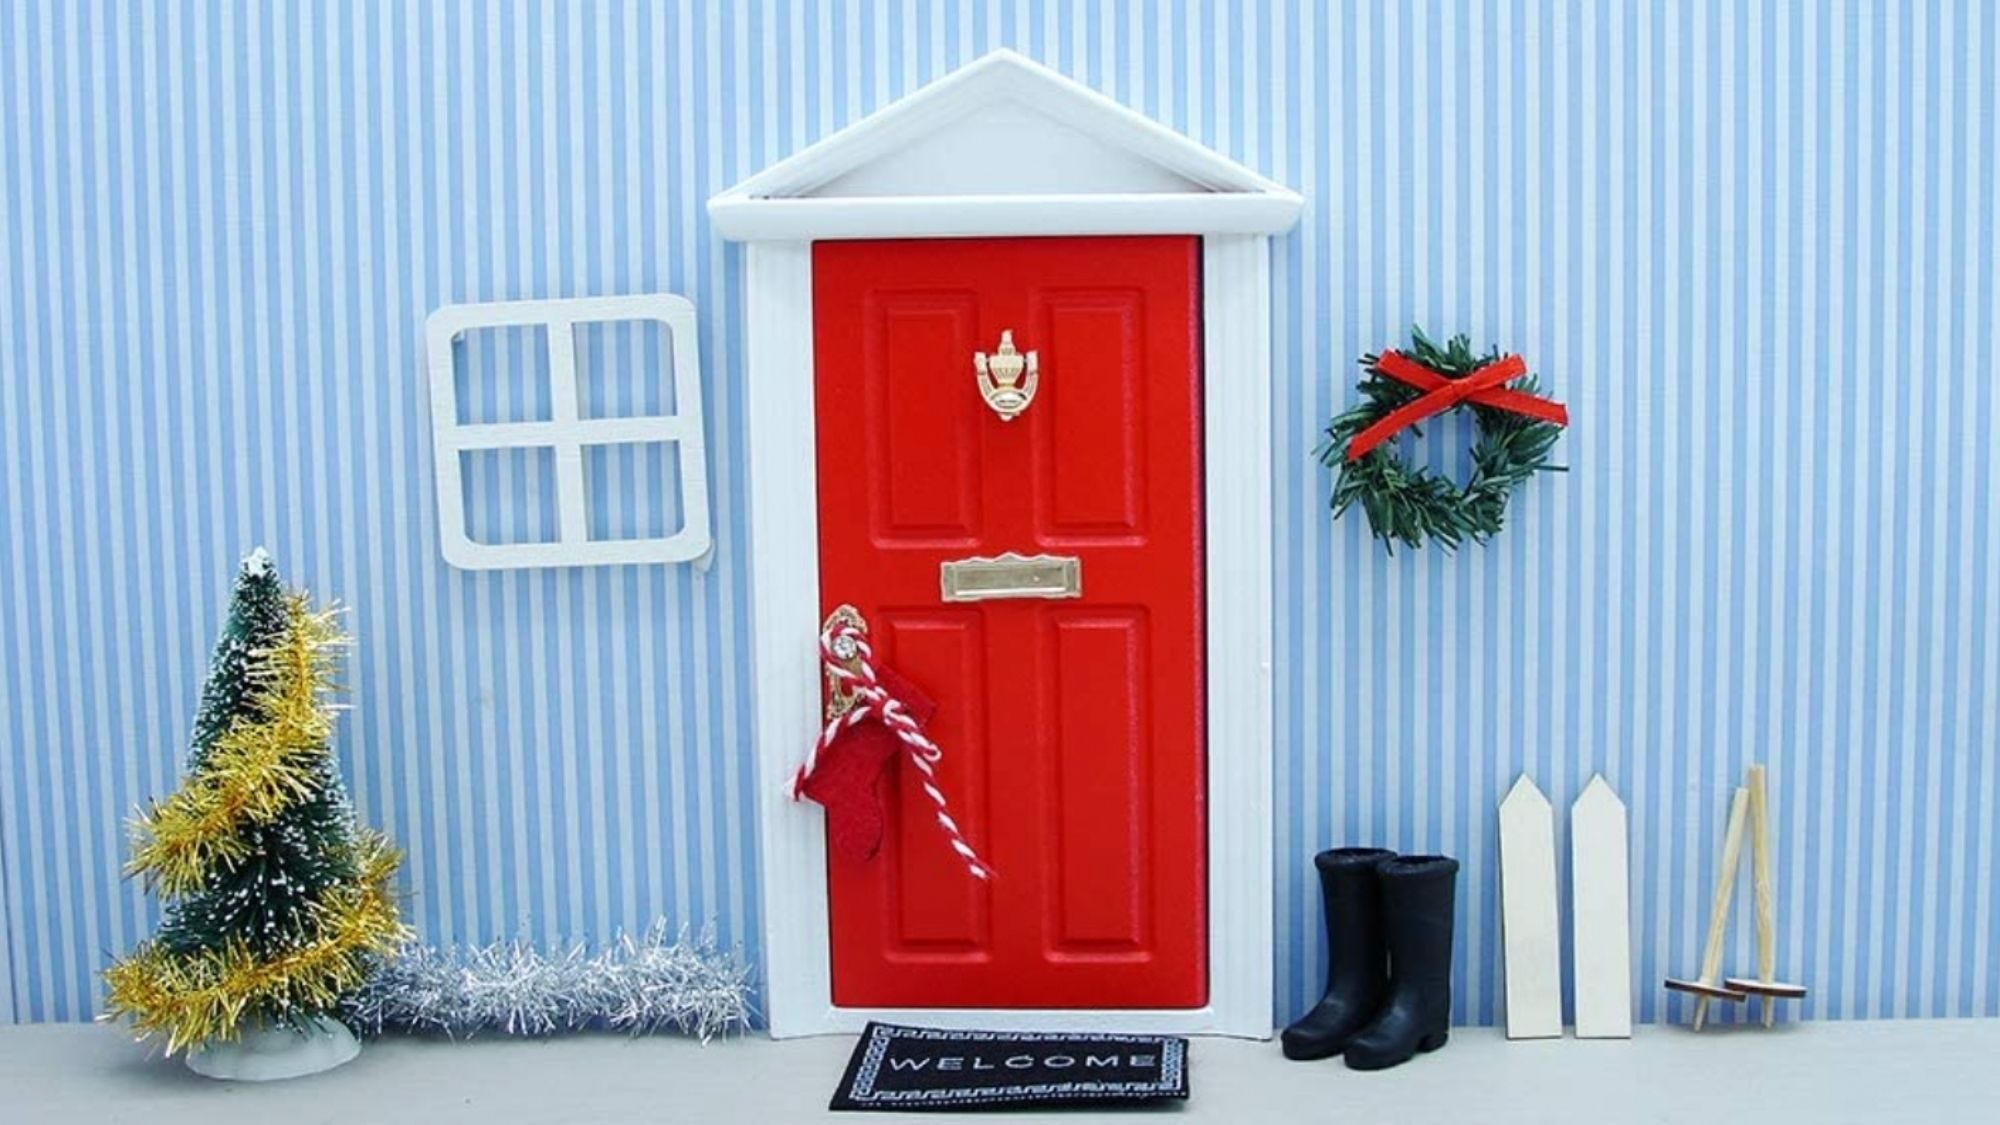 A tiny door to welcome your guest!